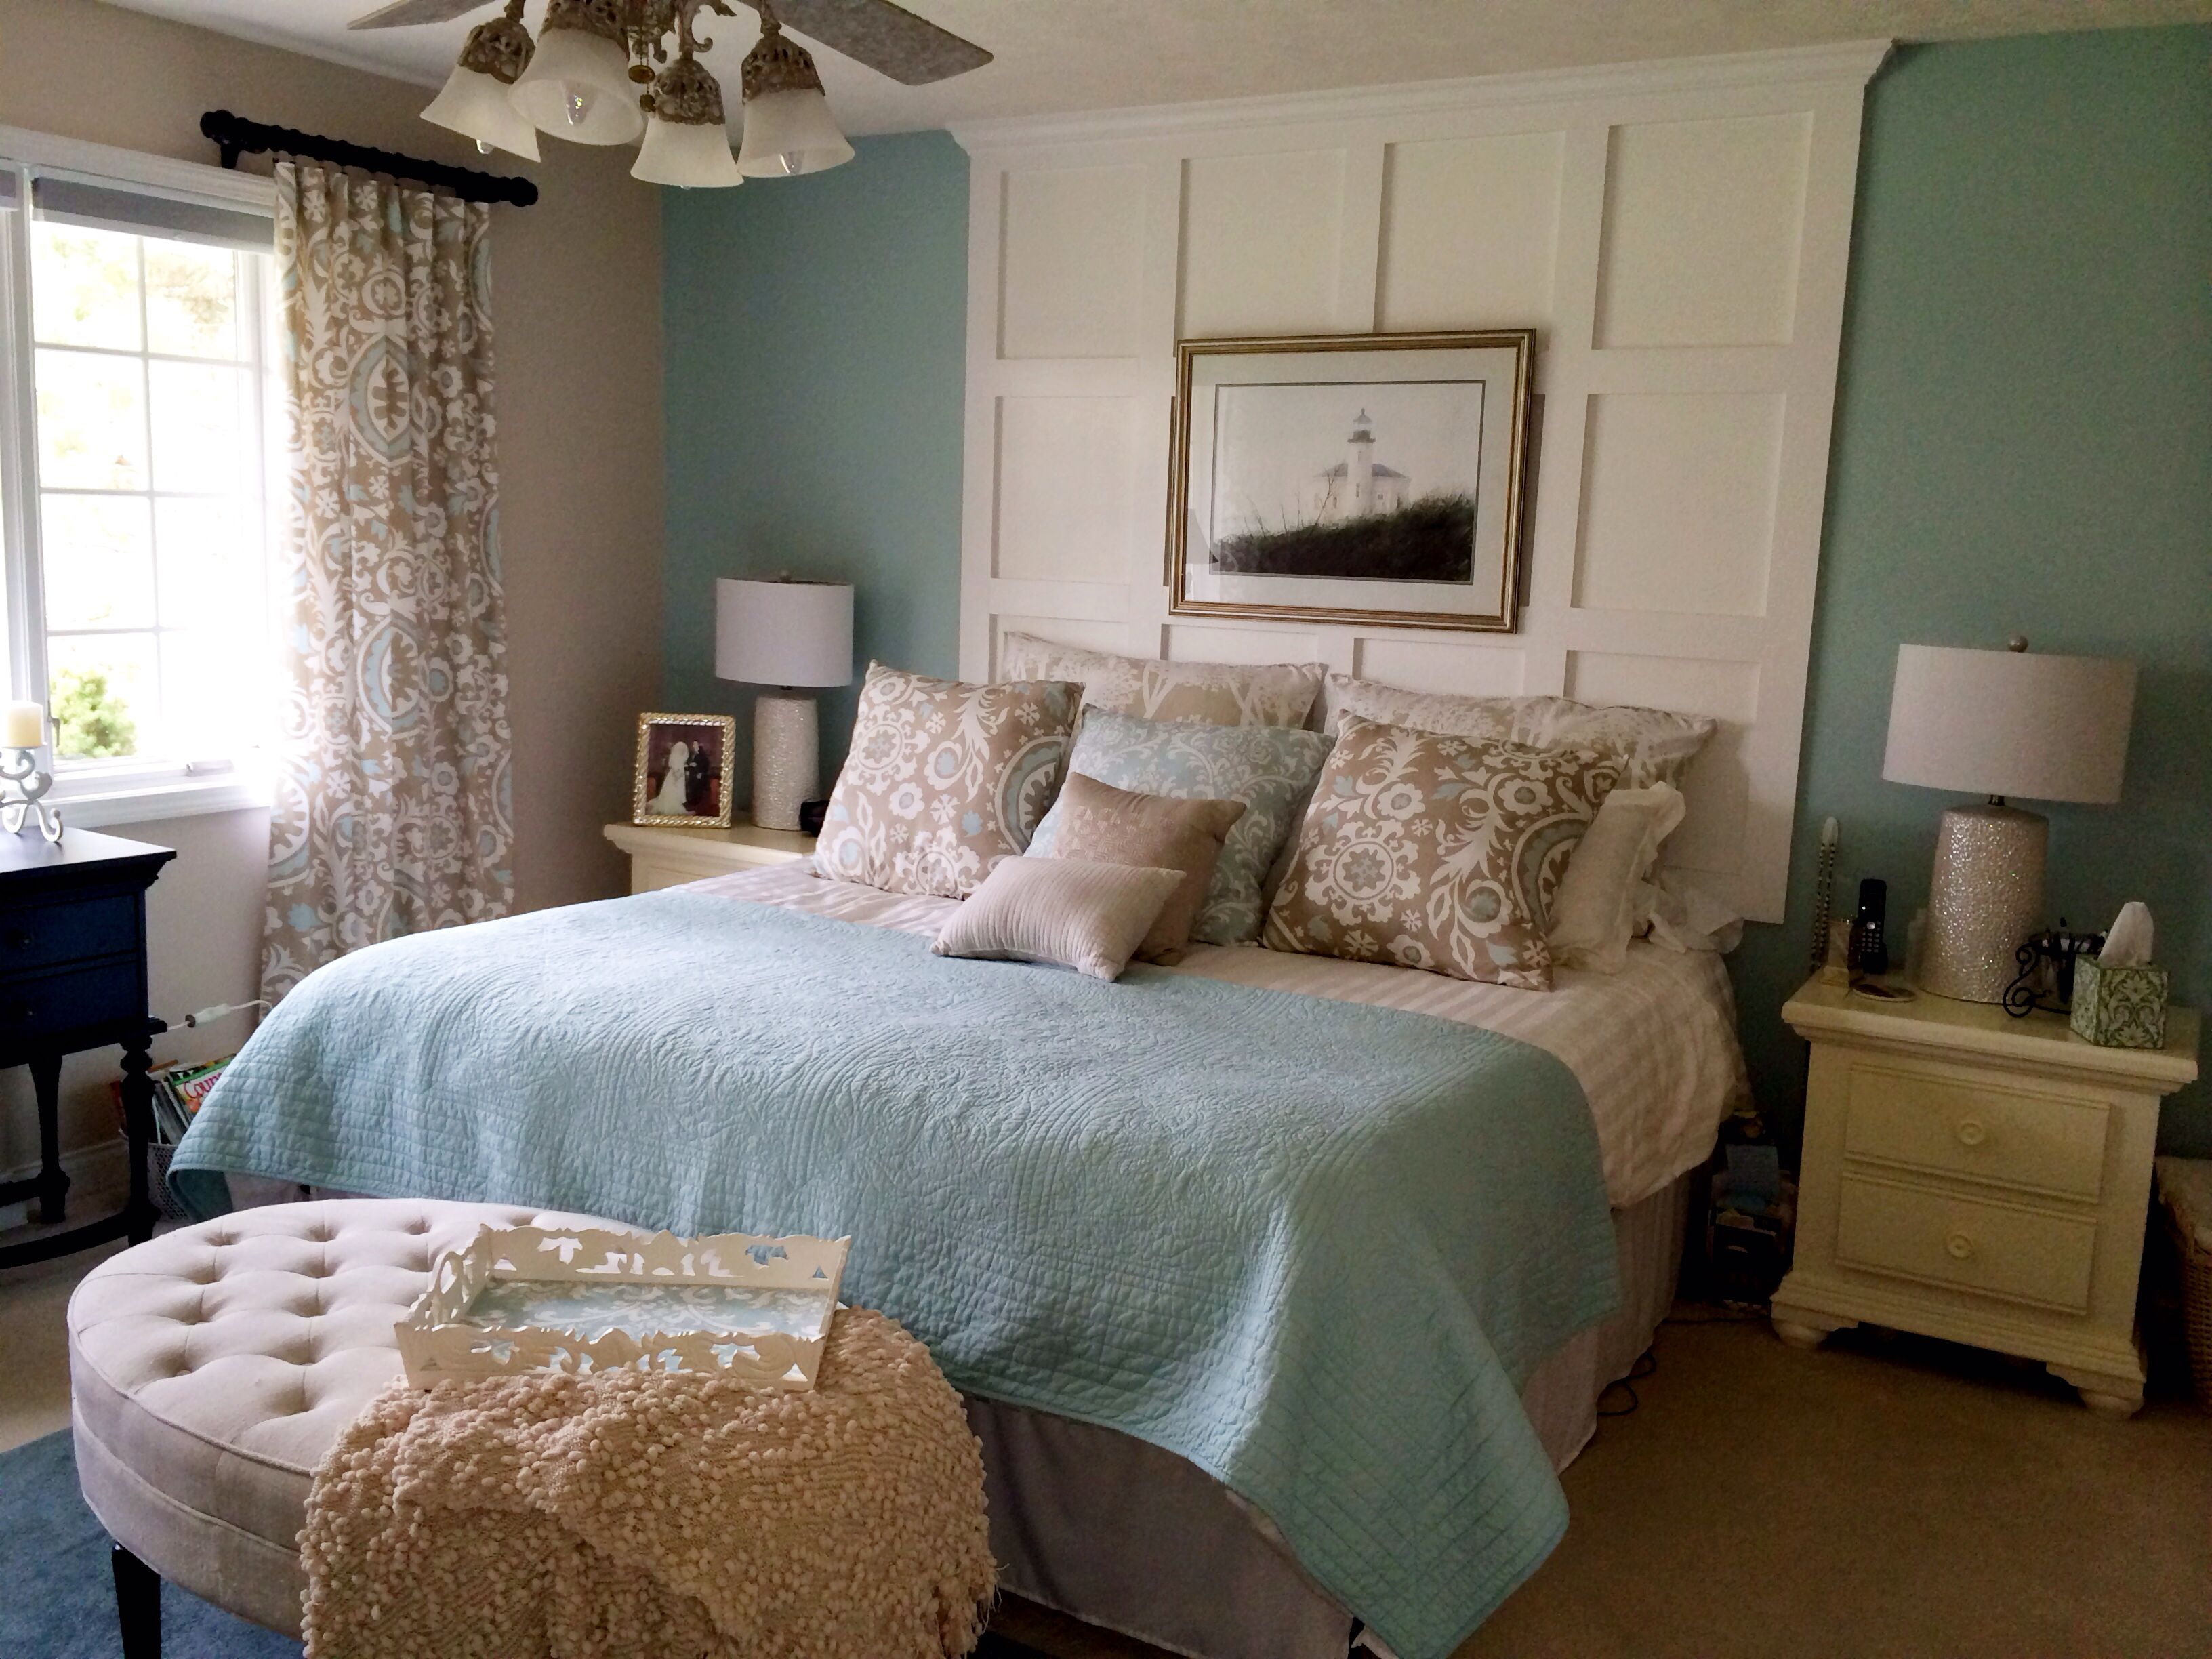 Calming bedroom colors 28 images calming bedroom for Calming bedroom colors